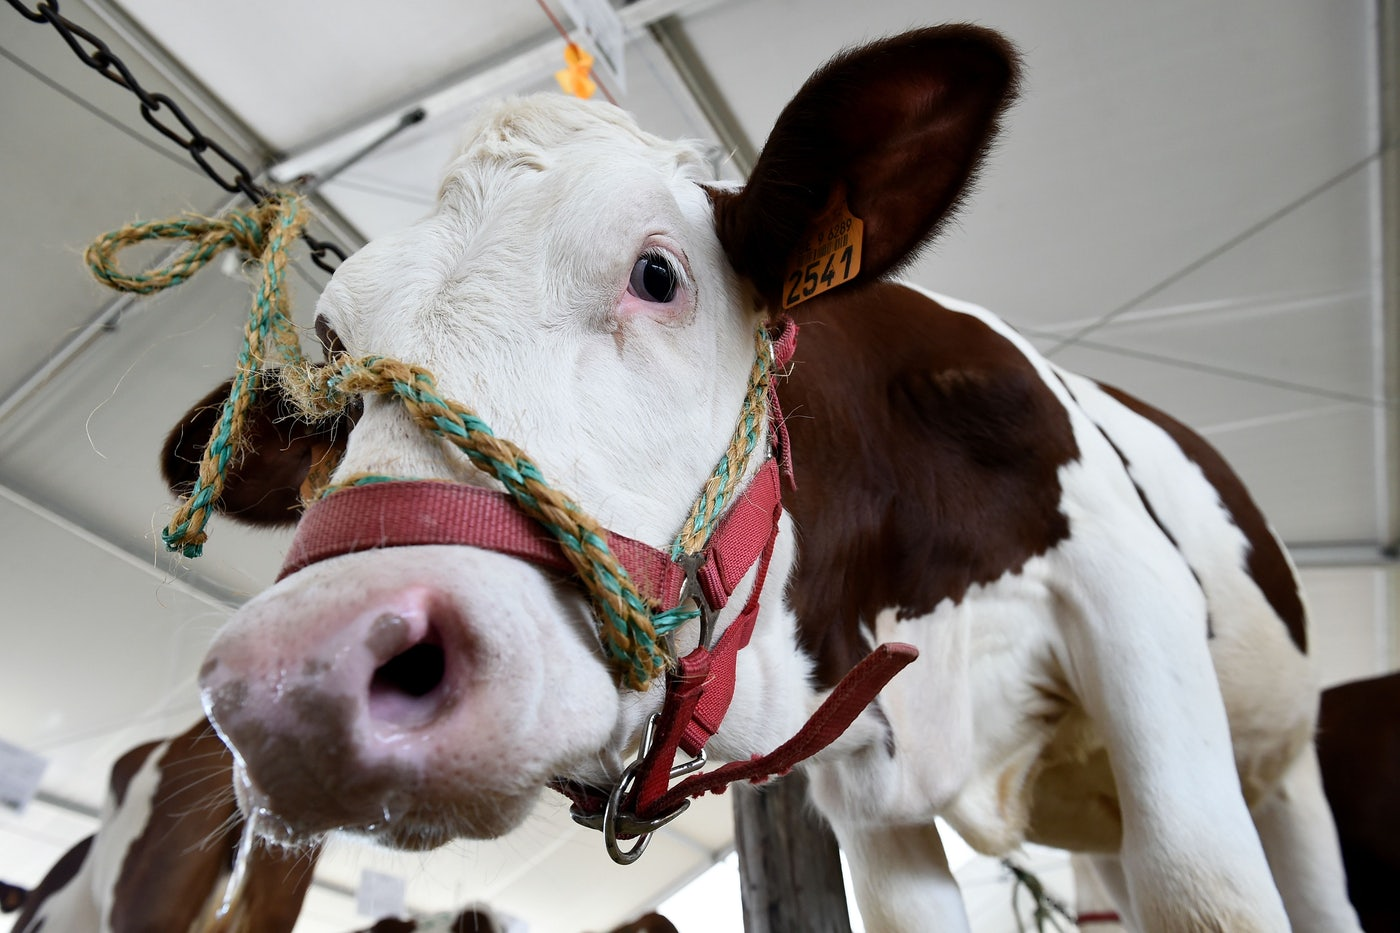 A Montbeliarde breed cow stands in its enclosure at an agricultural fair.